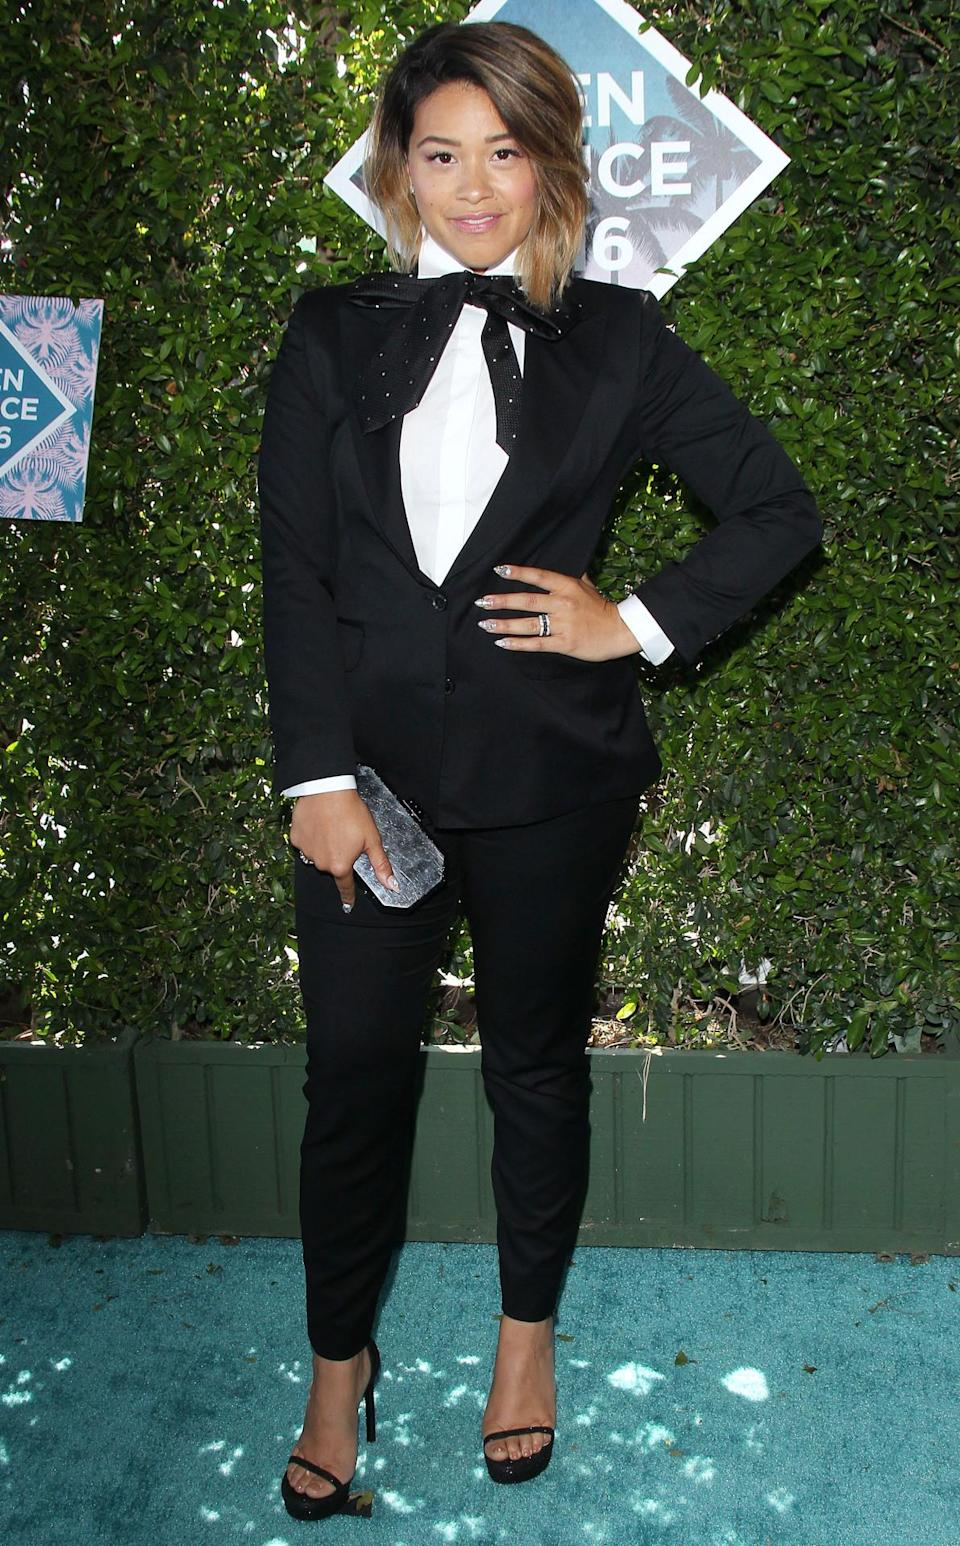 <p>Gina Rodriguez stole the limelight when she rocked up wearing a awesome Cielo suit. <i>[Photo: Rex]</i></p>